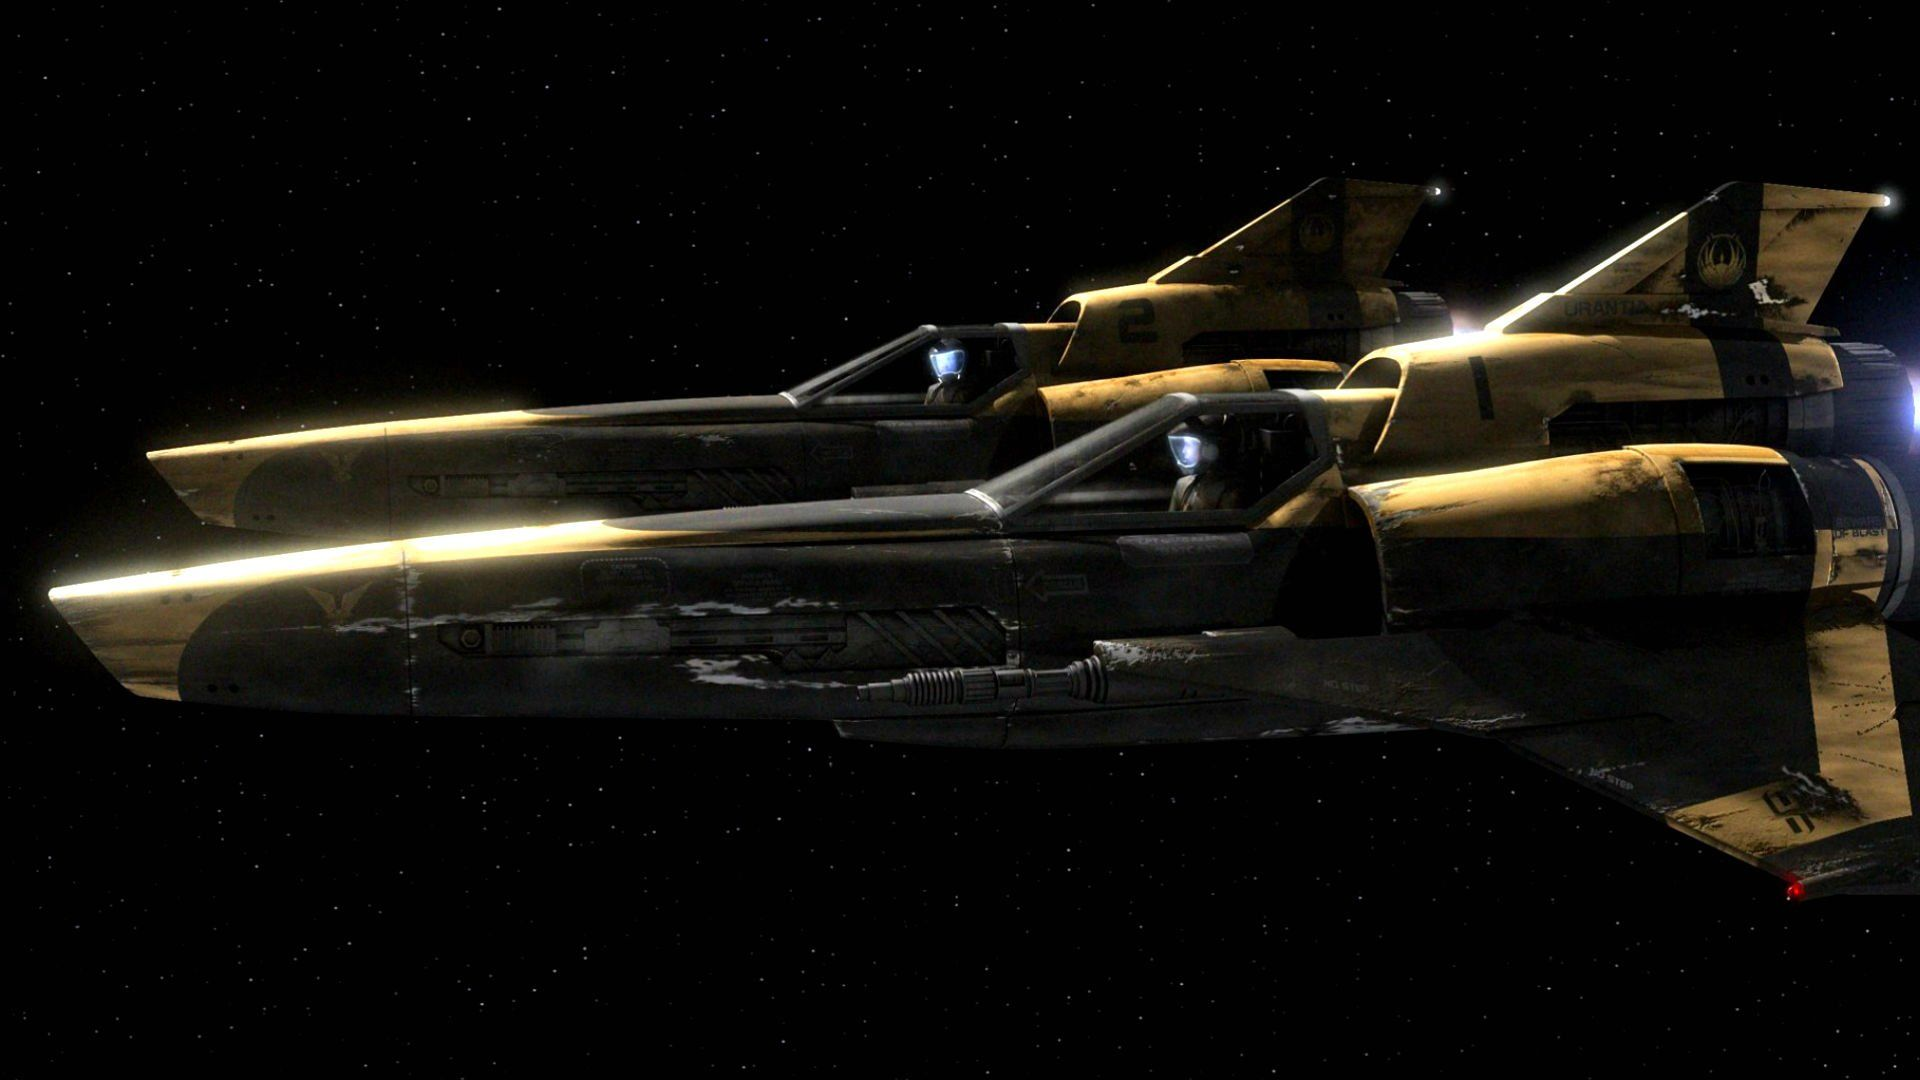 Battlestar Galactica Action Adventure Drama Sci Fi Spaceship Wallpaper Battlestar Galactica Viper Spaceship